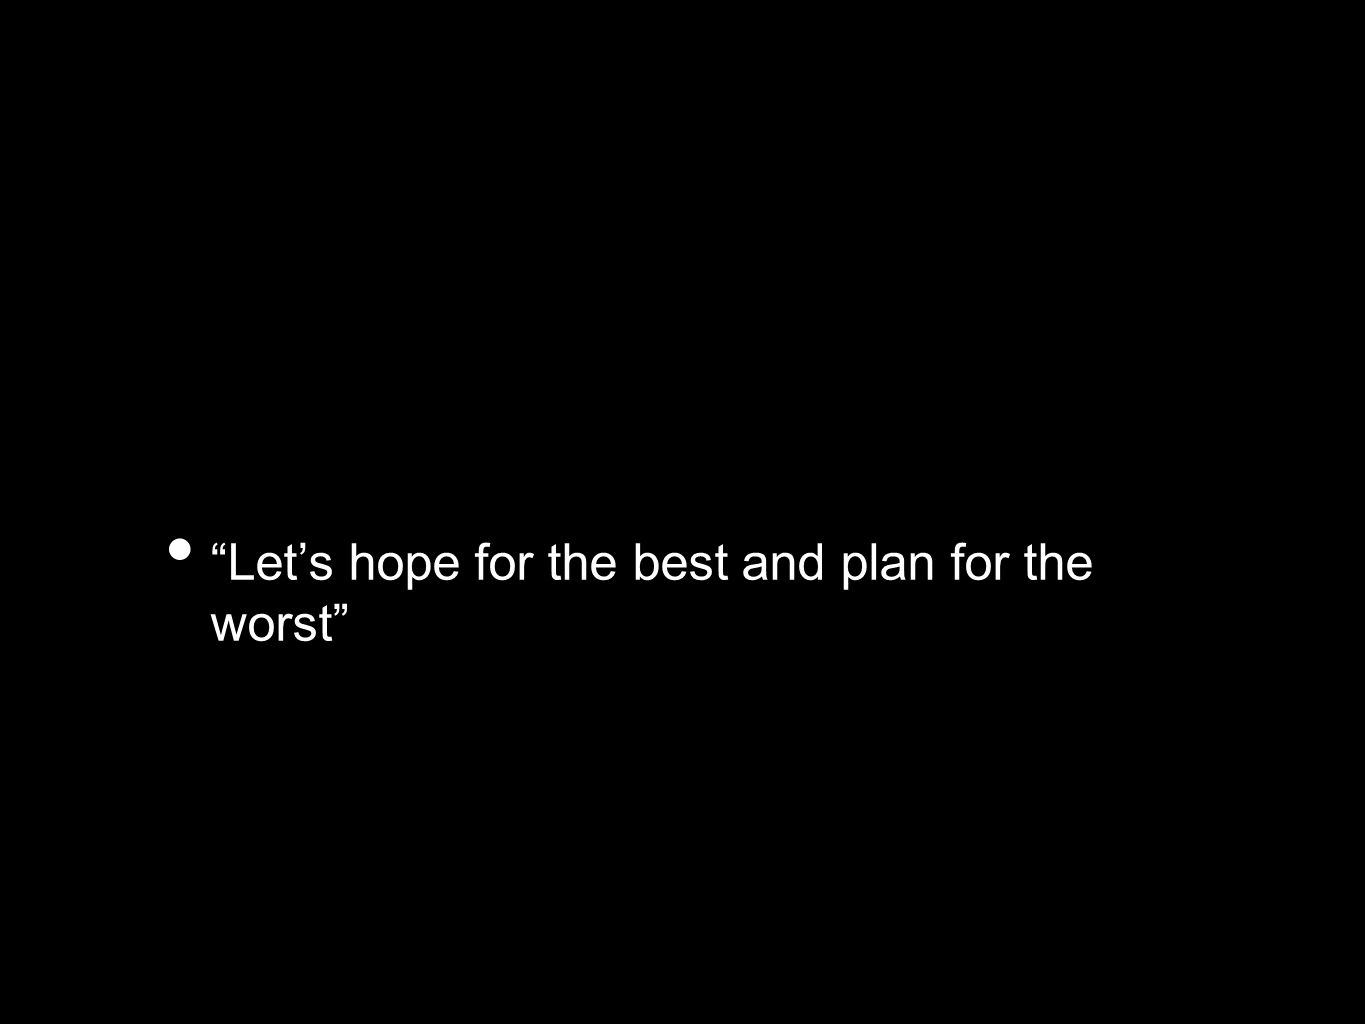 Let's hope for the best and plan for the worst